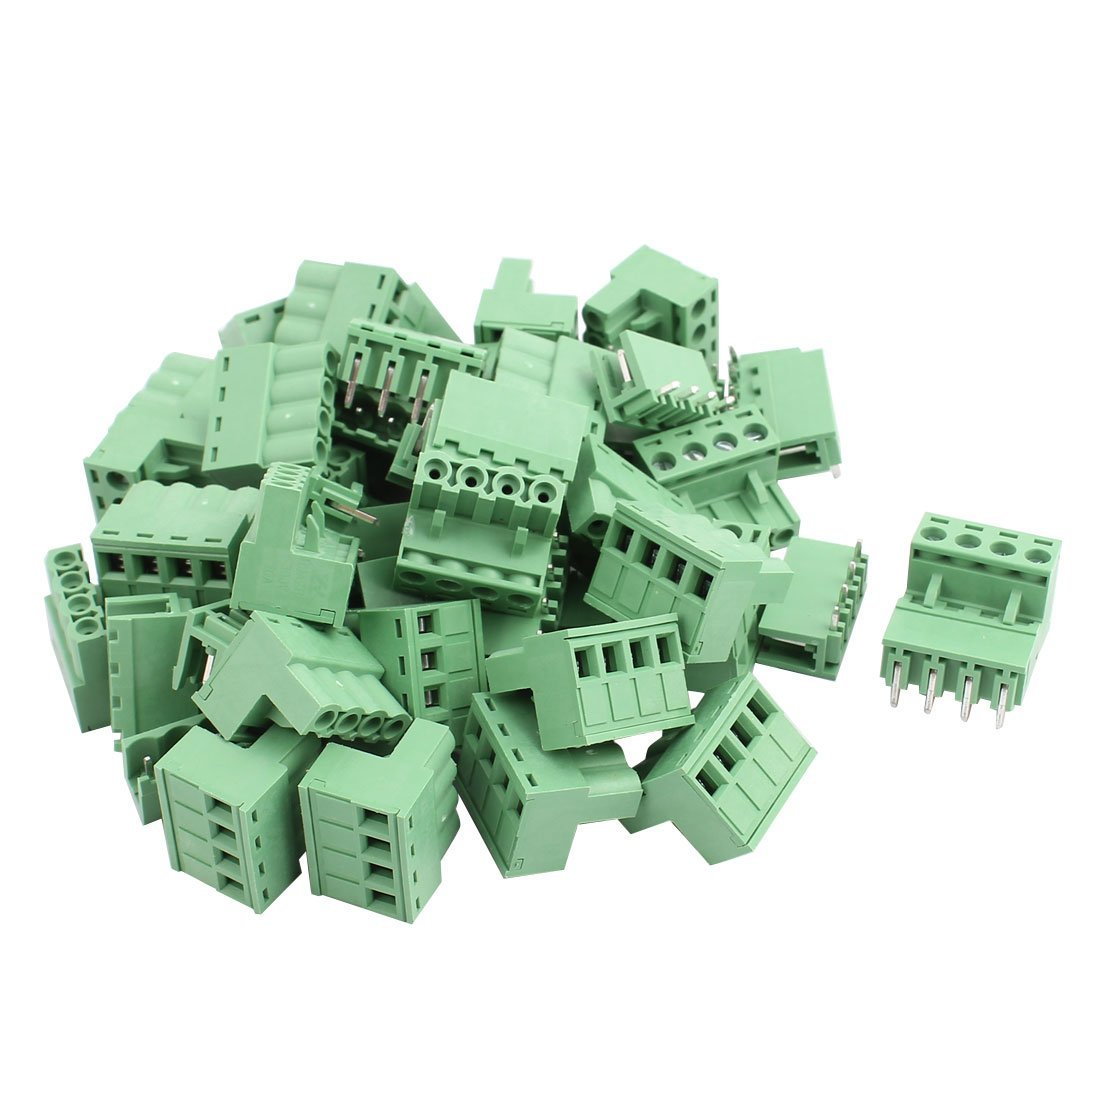 uxcell 27Pairs AC 300V 10A 4 Terminal 5.08mm Spacing PCB Screw Terminal Block Connector